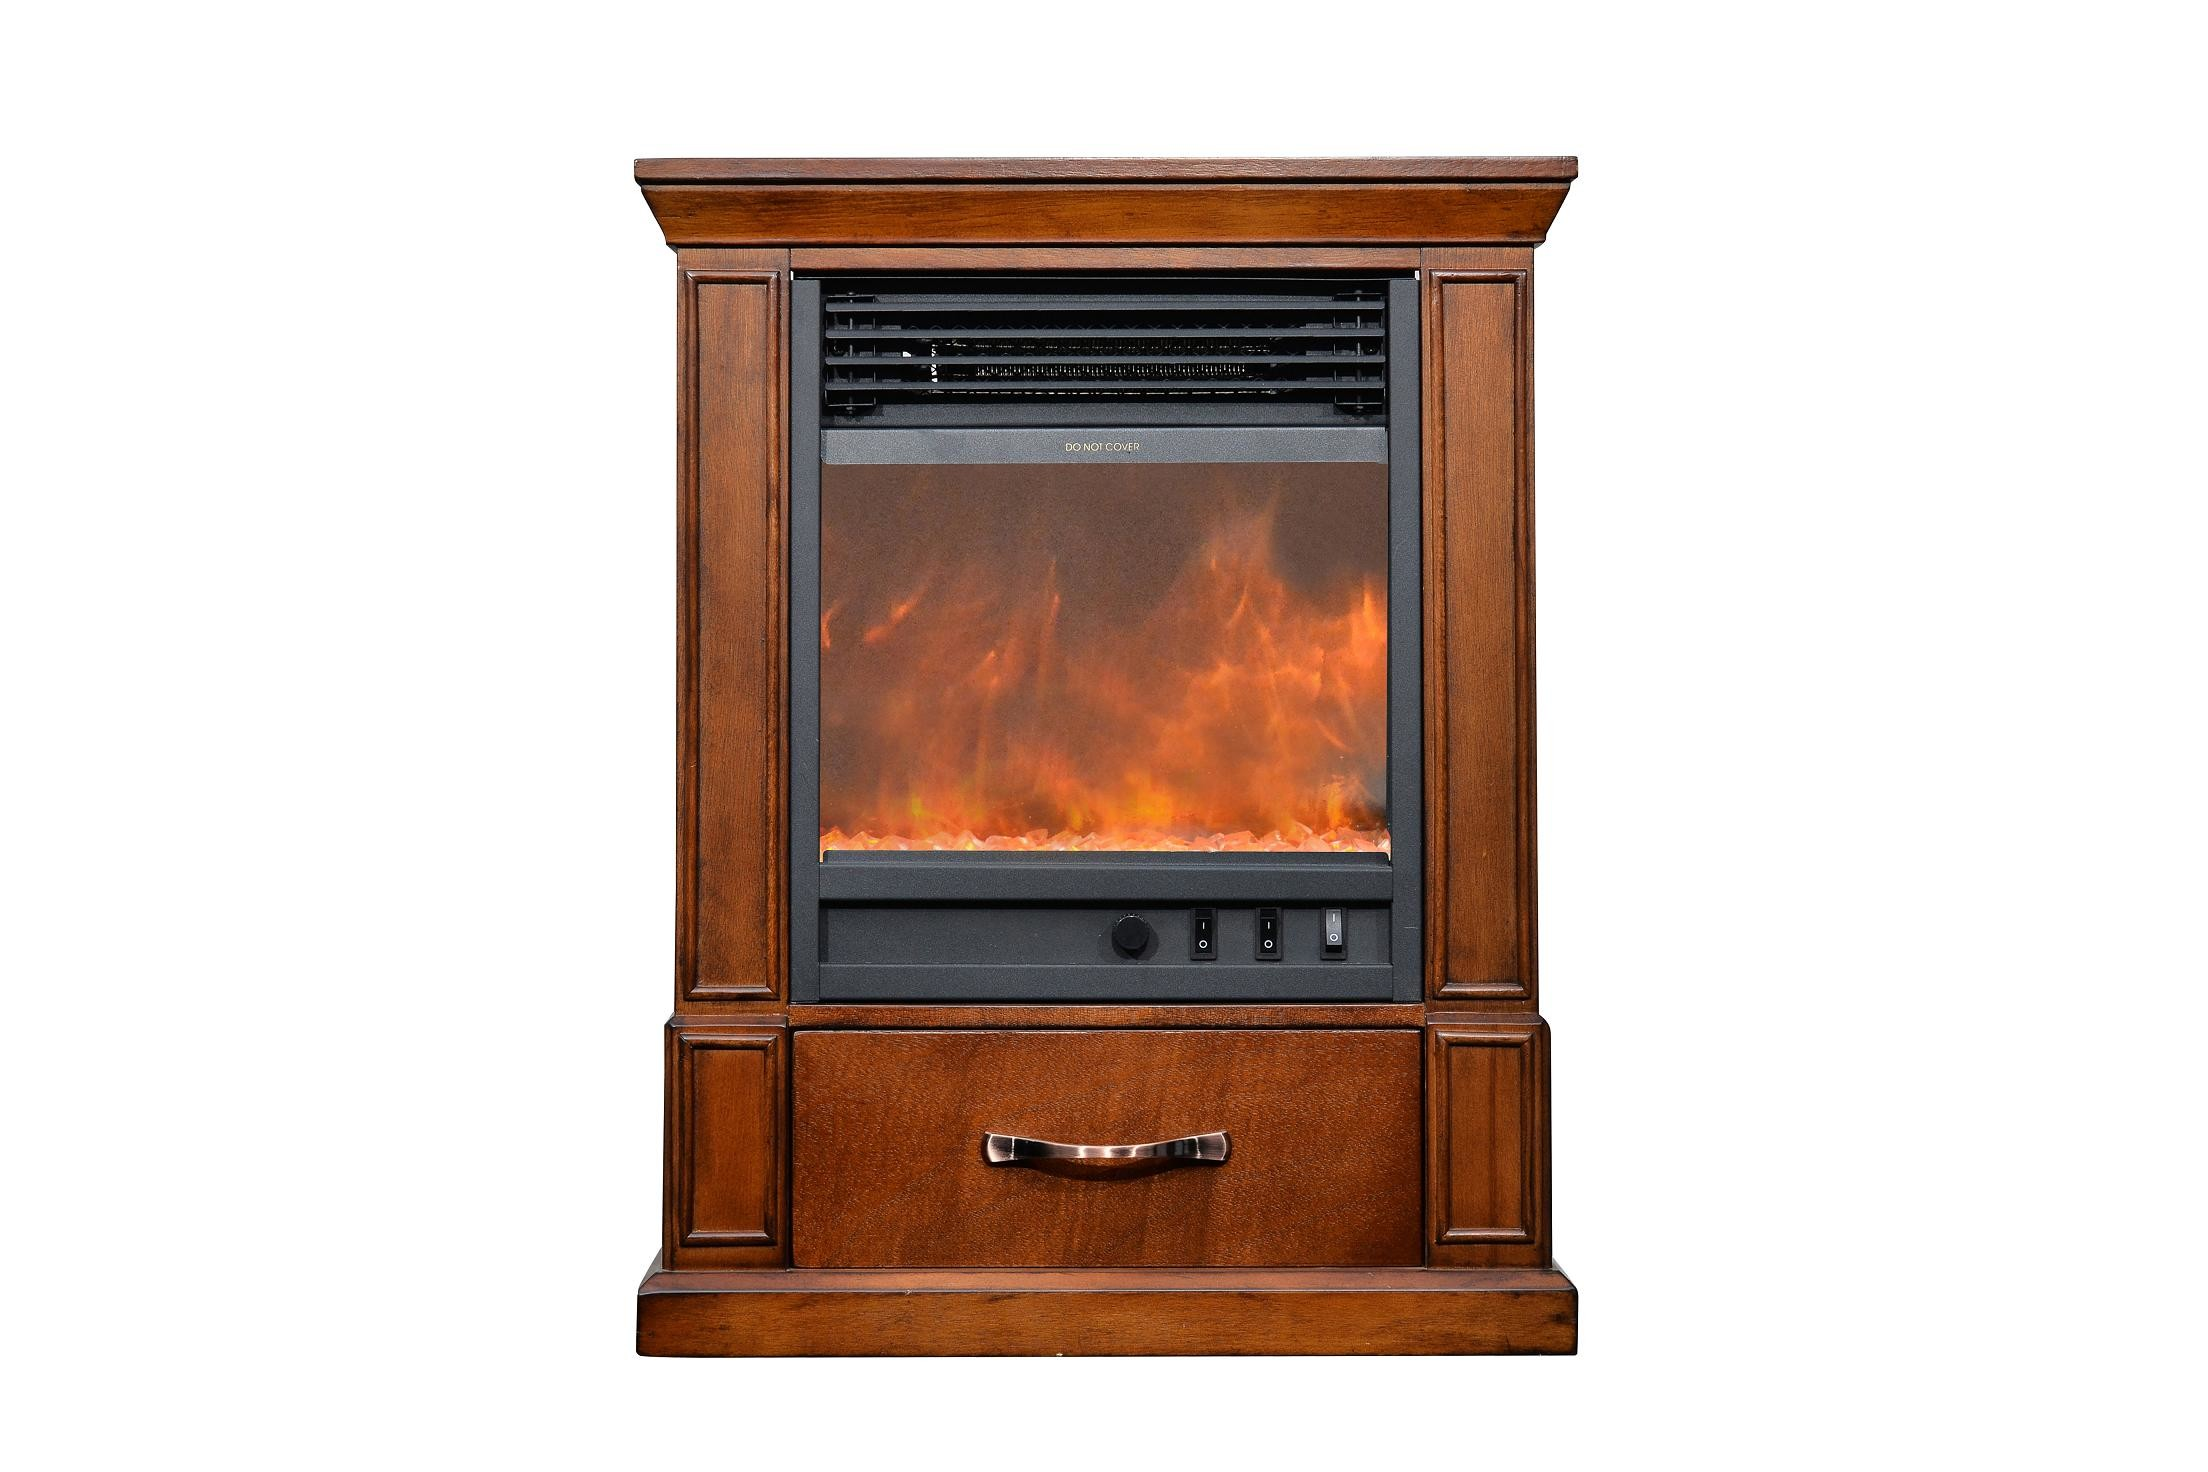 13 Insert Fire Box With Mdf Frame Freestanding Stove